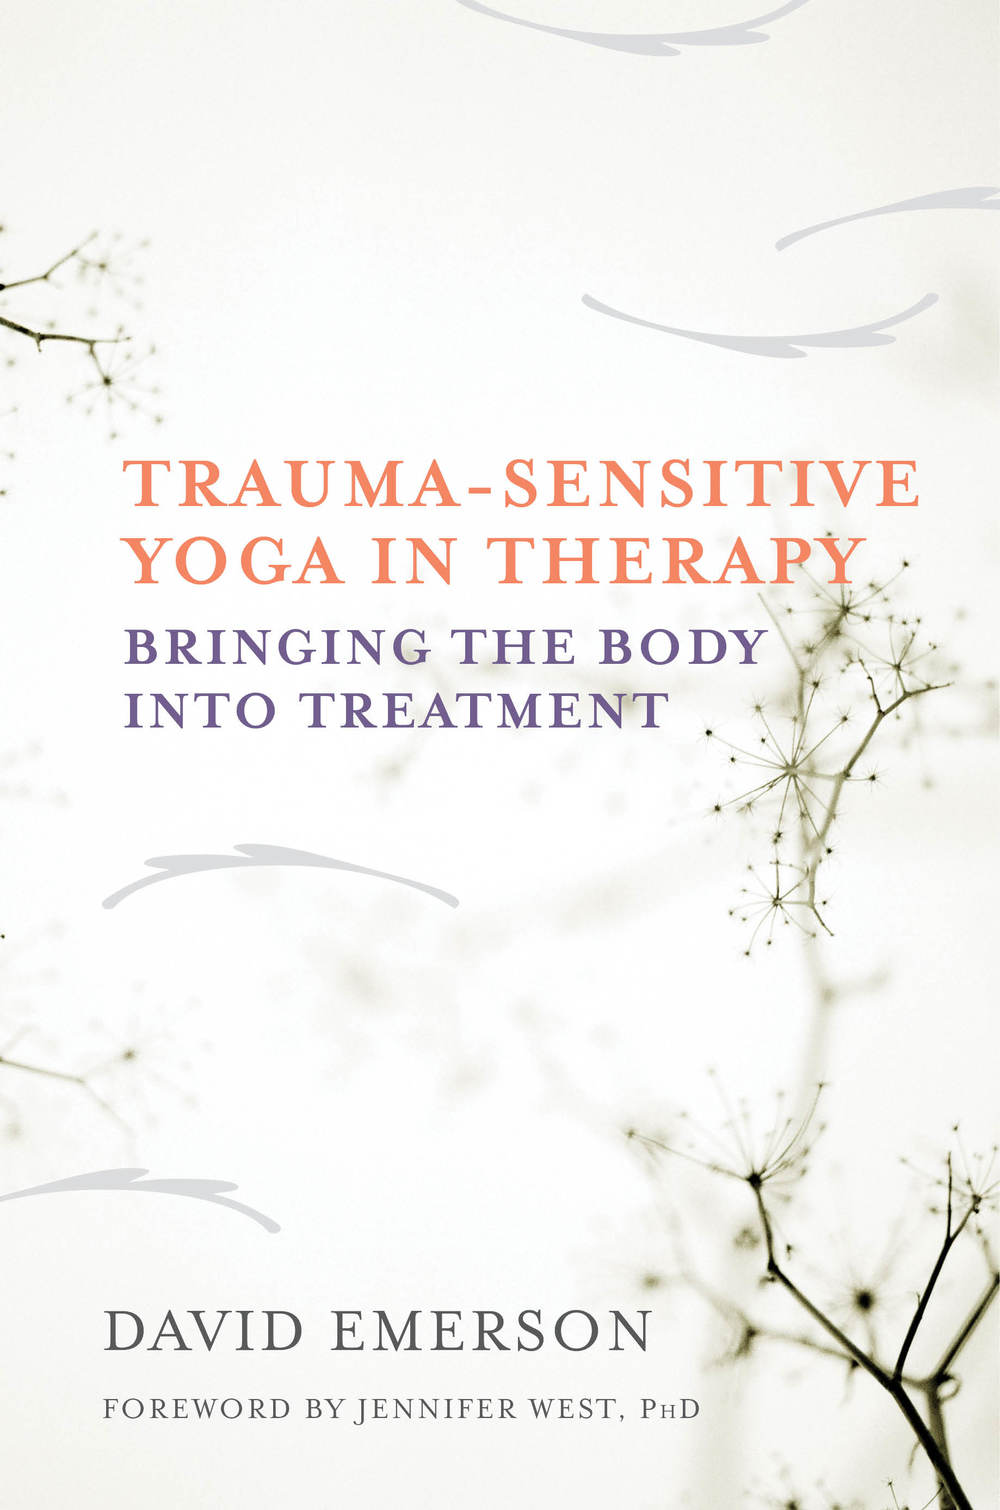 Trauma Sensitive Yoga in Therapy - David Emerson